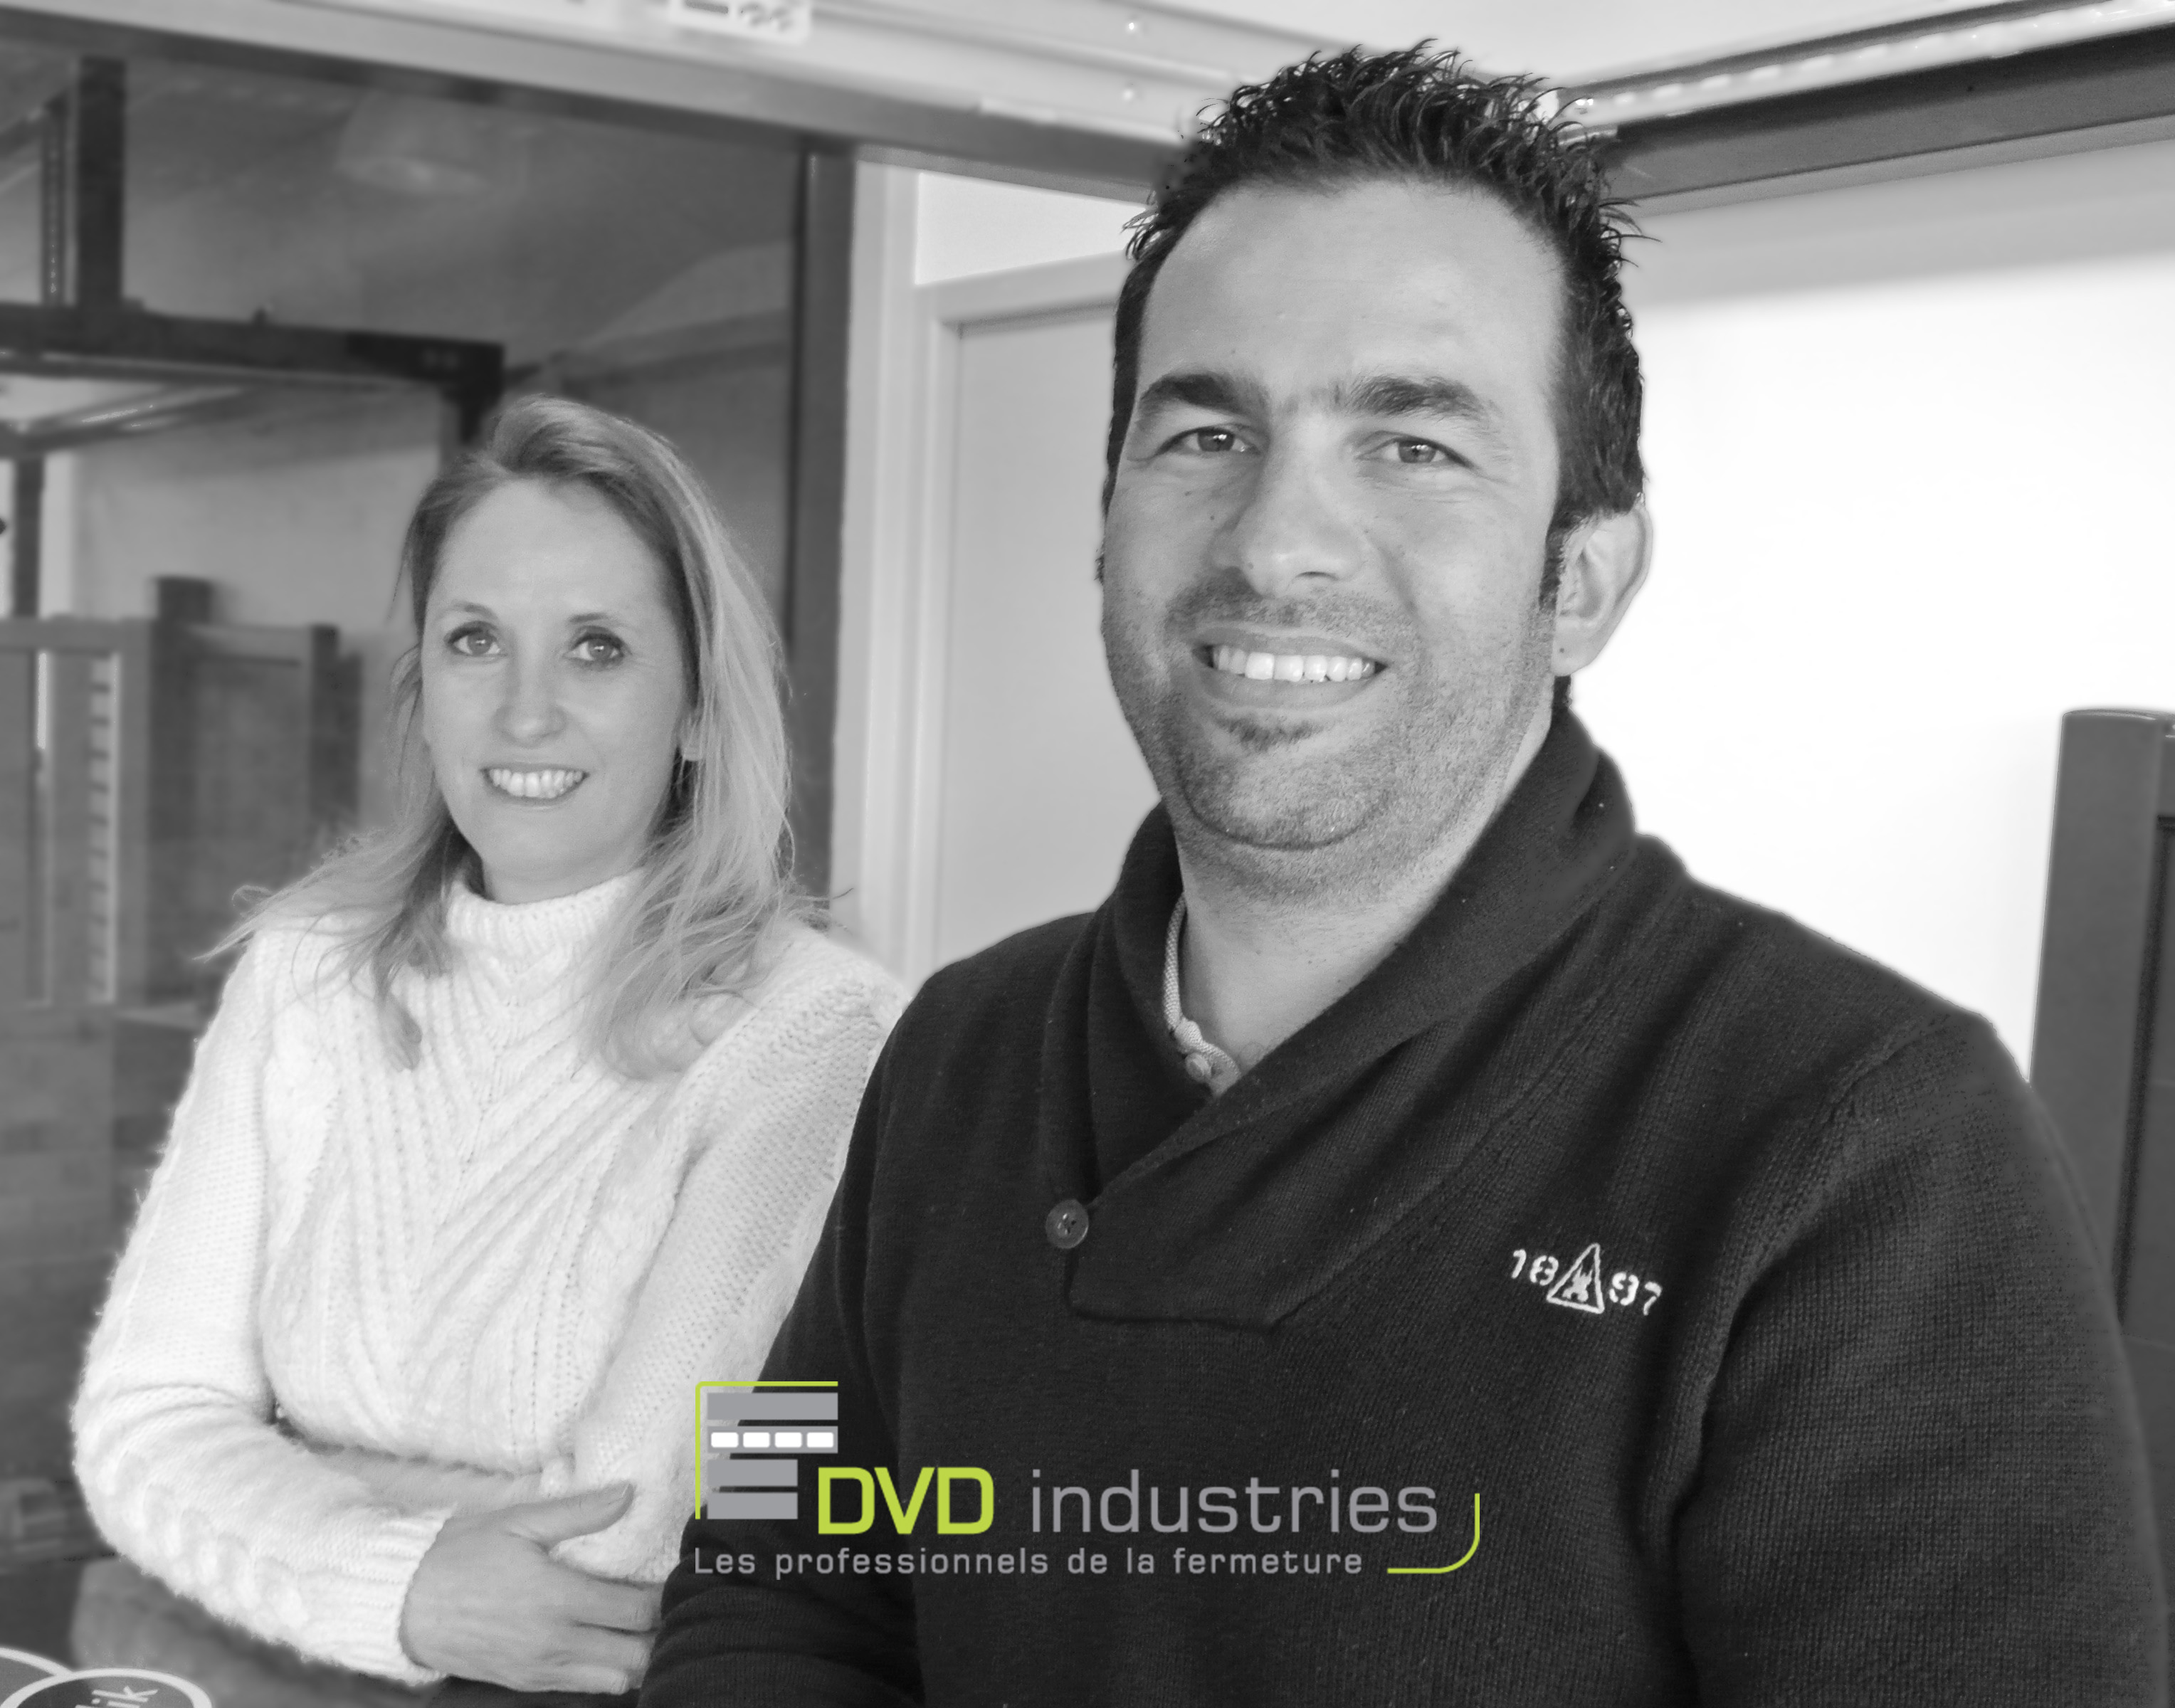 photo-dvd-industrie-grenoble - porte de garage-dvd industries-grenoble